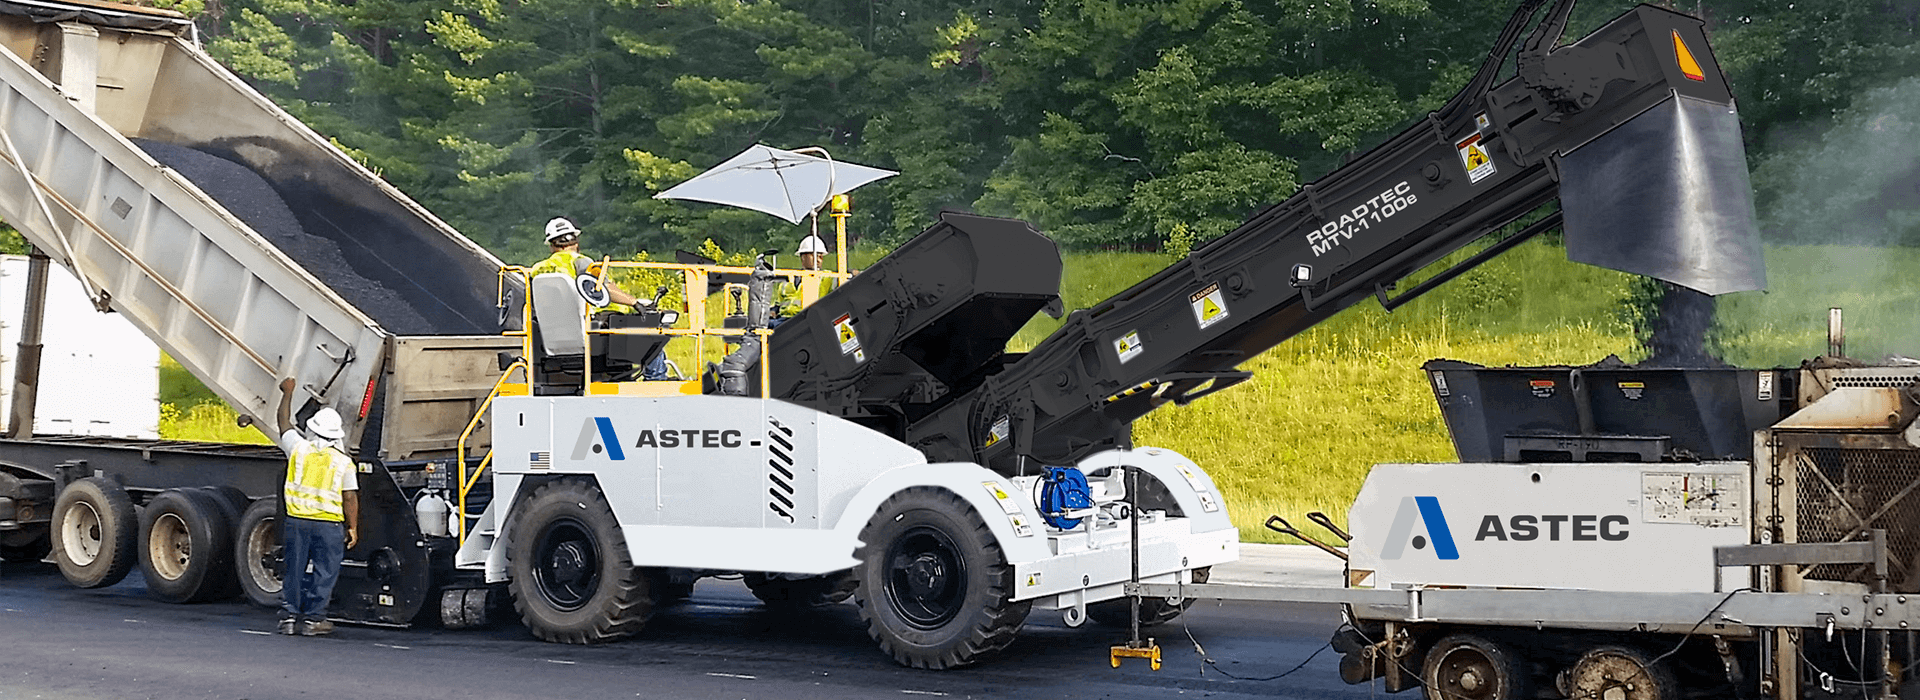 A Roadtec MTV-1100 material transfer vehicle working with a roadtec paver